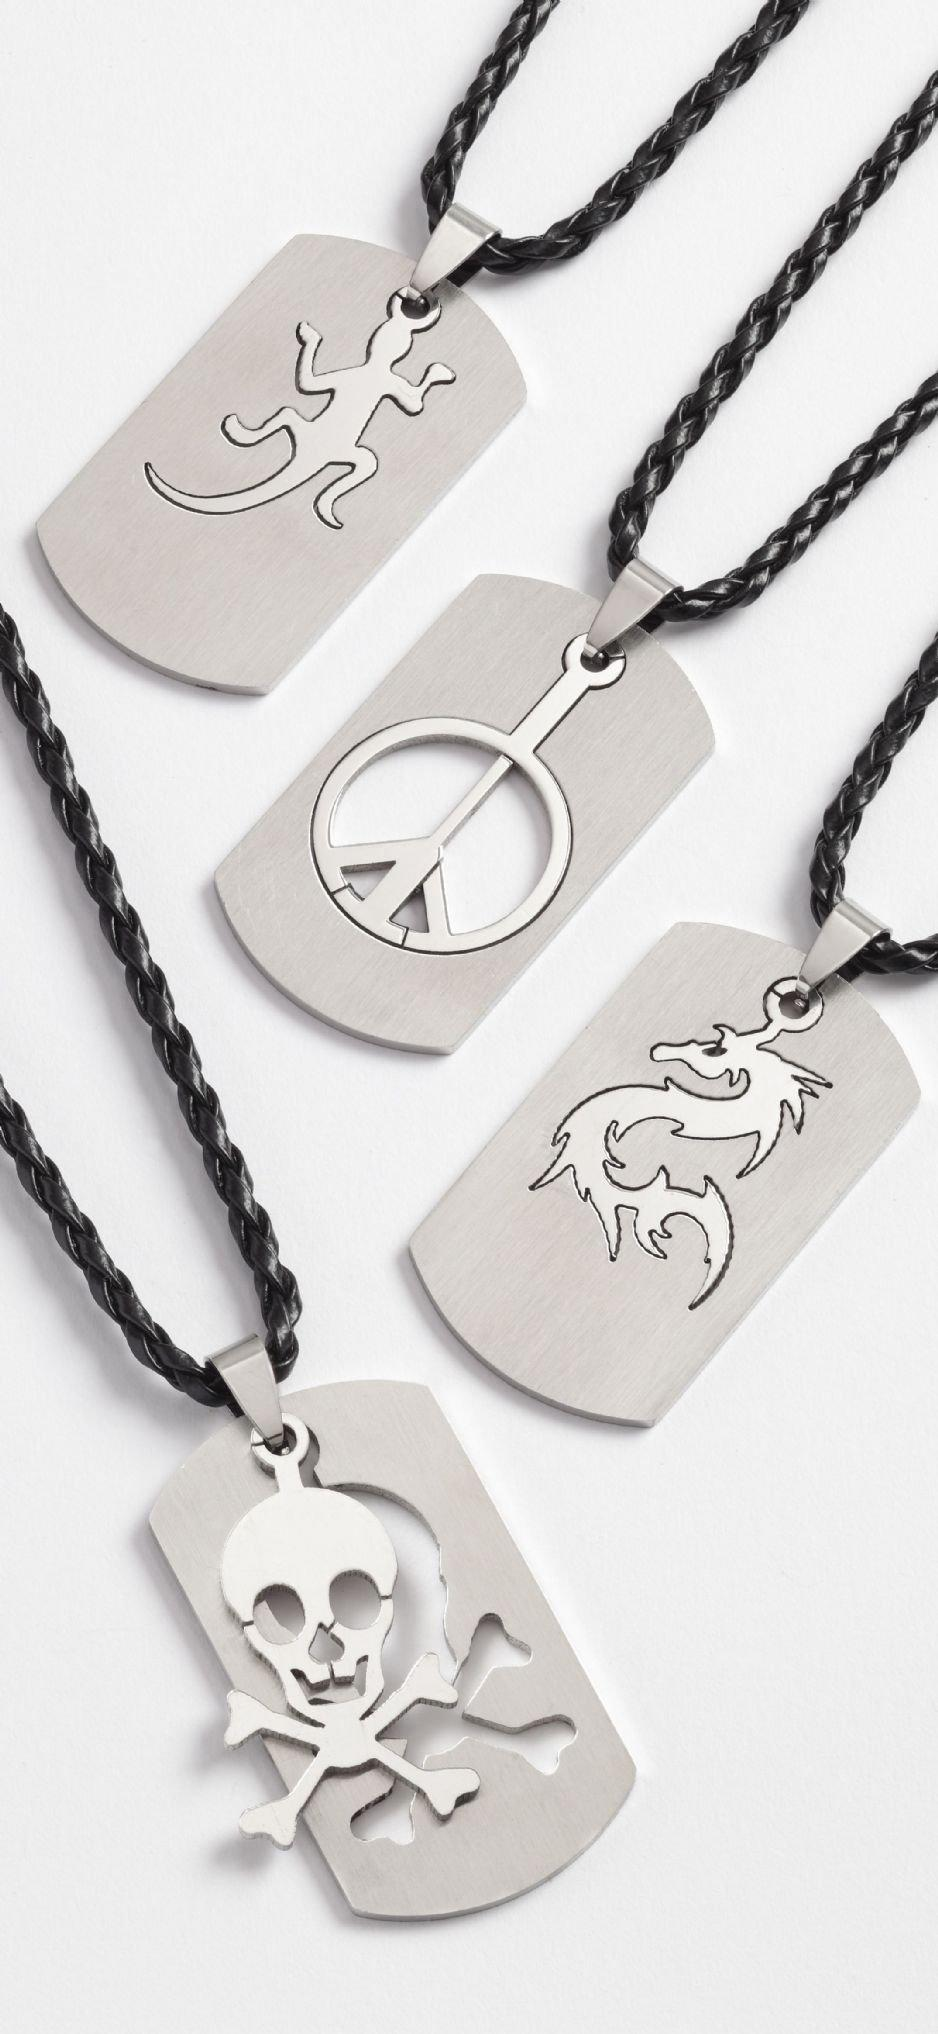 Stainless Steel Cut Out Dog Tags Display